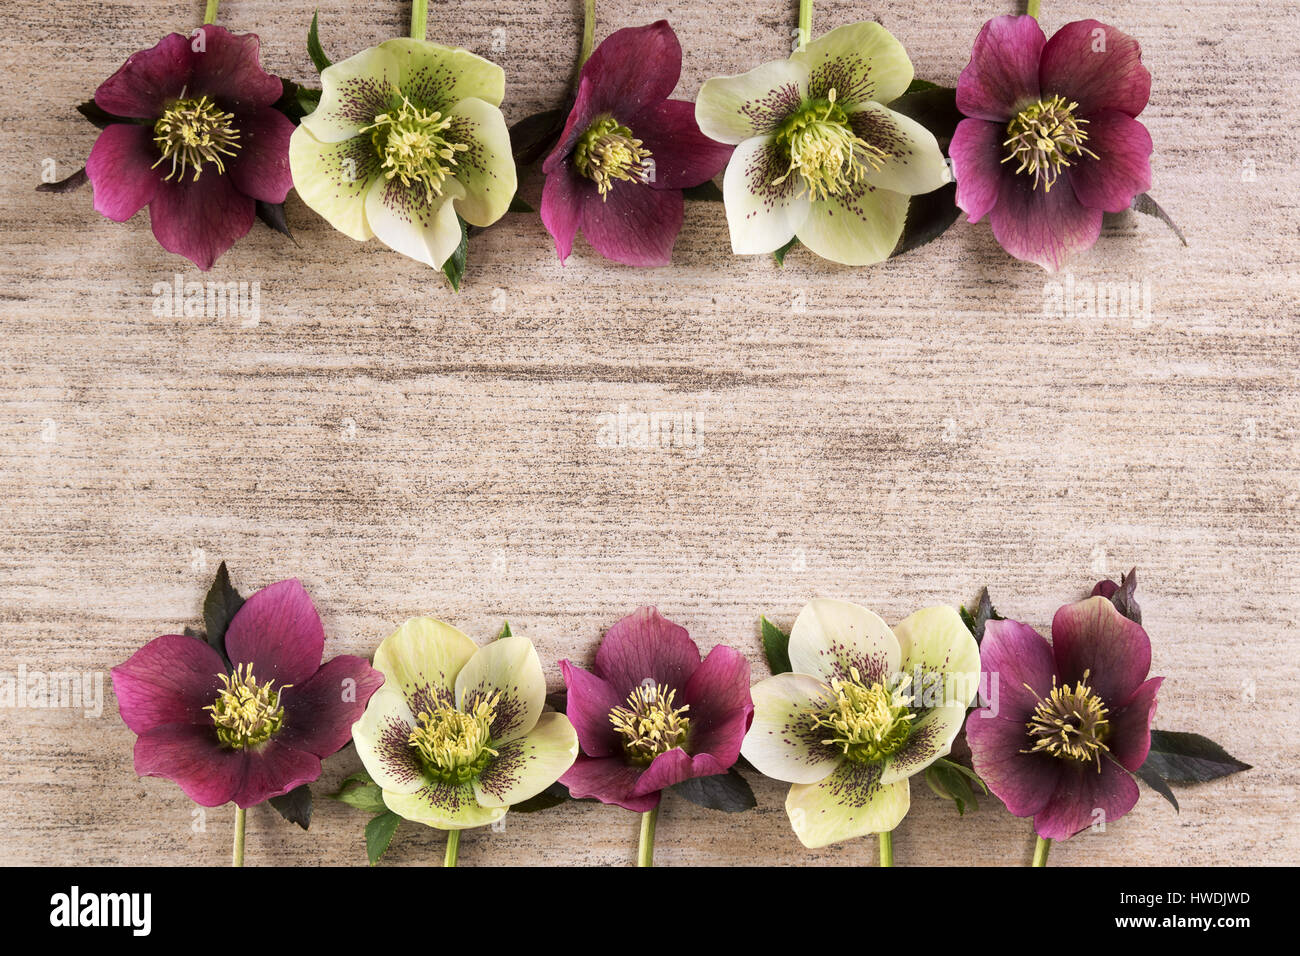 Frame Spring Flowers Lenten Rose In A Row On Light Brown Rustic Background Copy Space